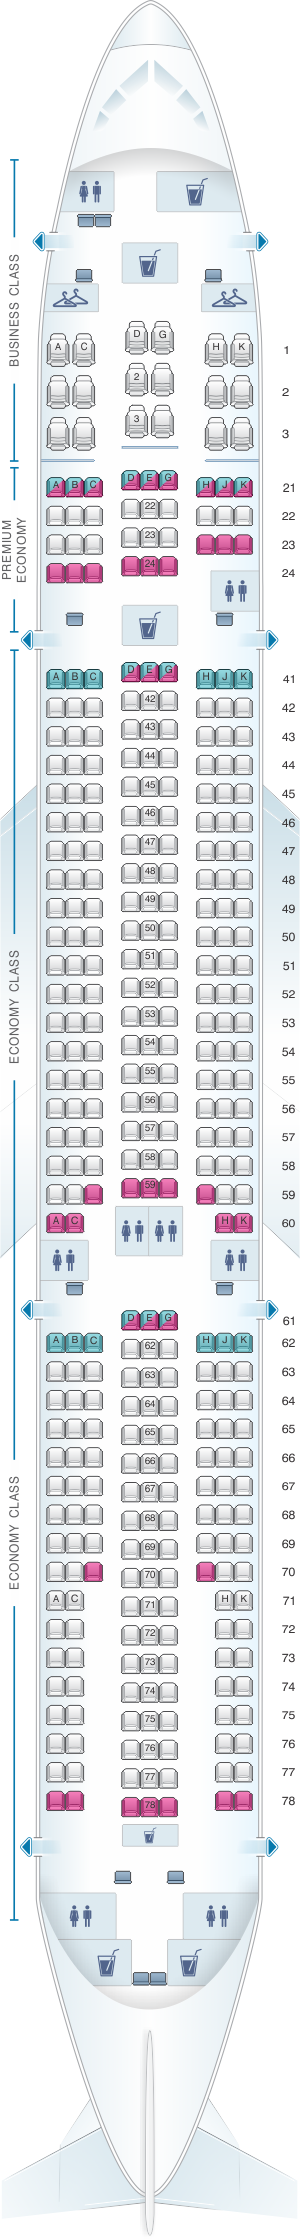 Seat map for Philippine Airlines Airbus A330 300 363pax